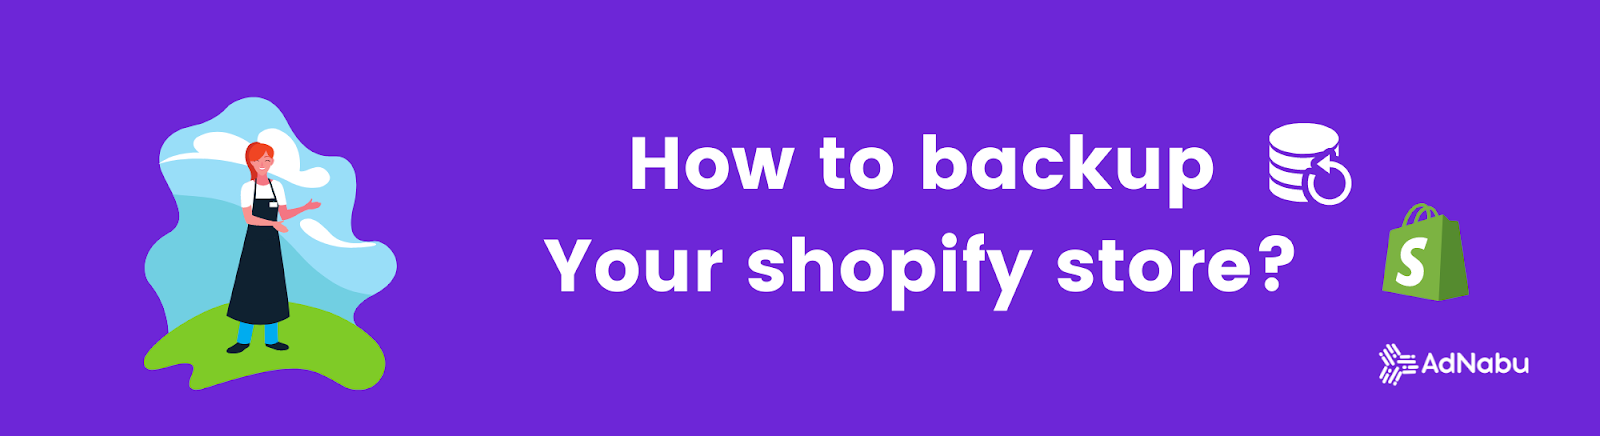 How to backup your shopify stores